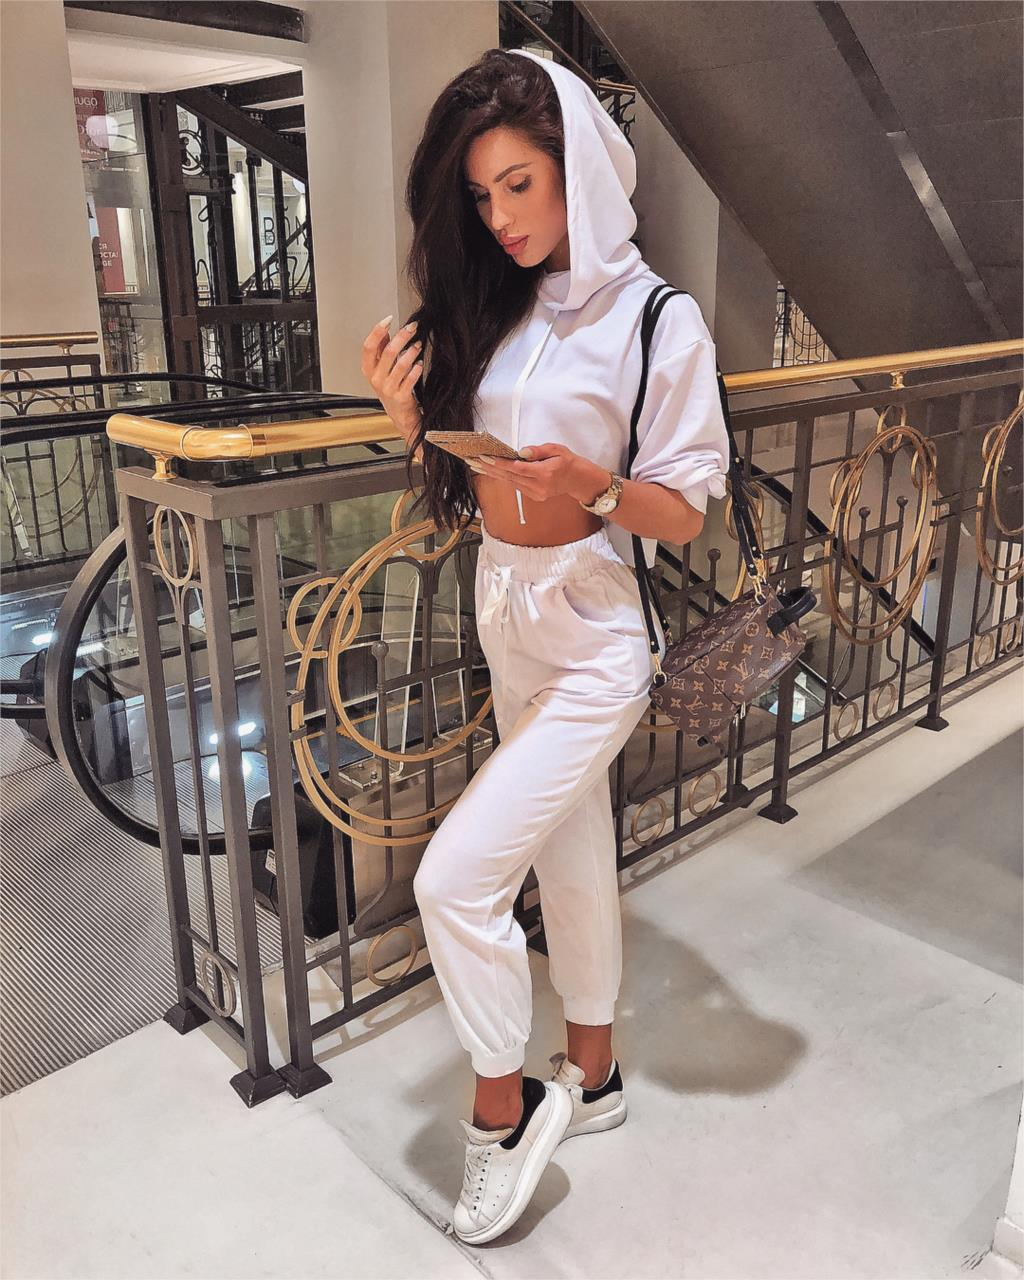 WannaThis Women 2 Pieces Sets Streetwear Pullover Lace Up Crop Top and Cargo Pants Loose Jogger Trousers Solid Autumn Winter2019 in Women 39 s Sets from Women 39 s Clothing